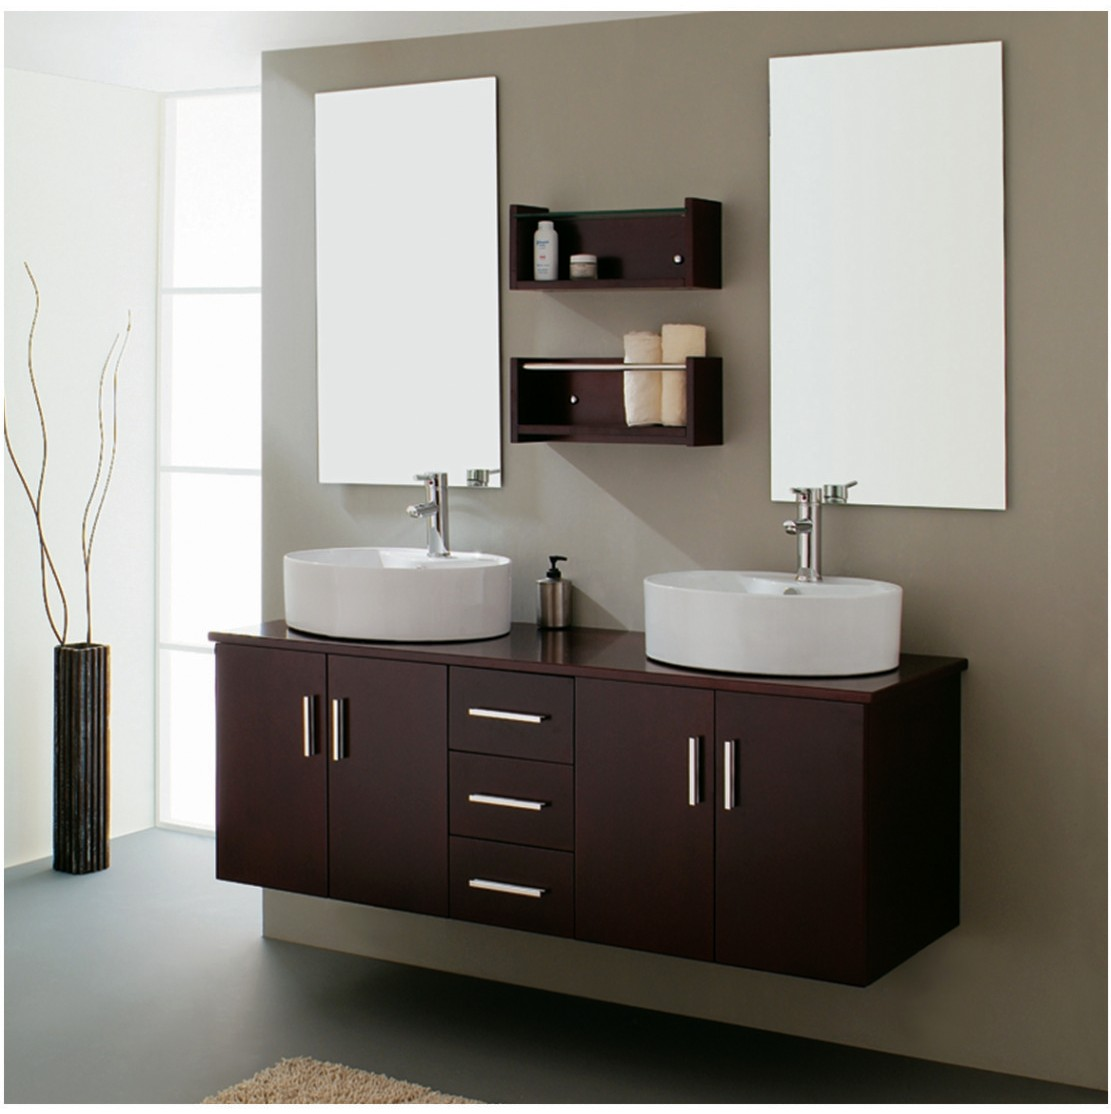 Modern bathroom double sink home decorating ideas for Bathroom ideas double sink